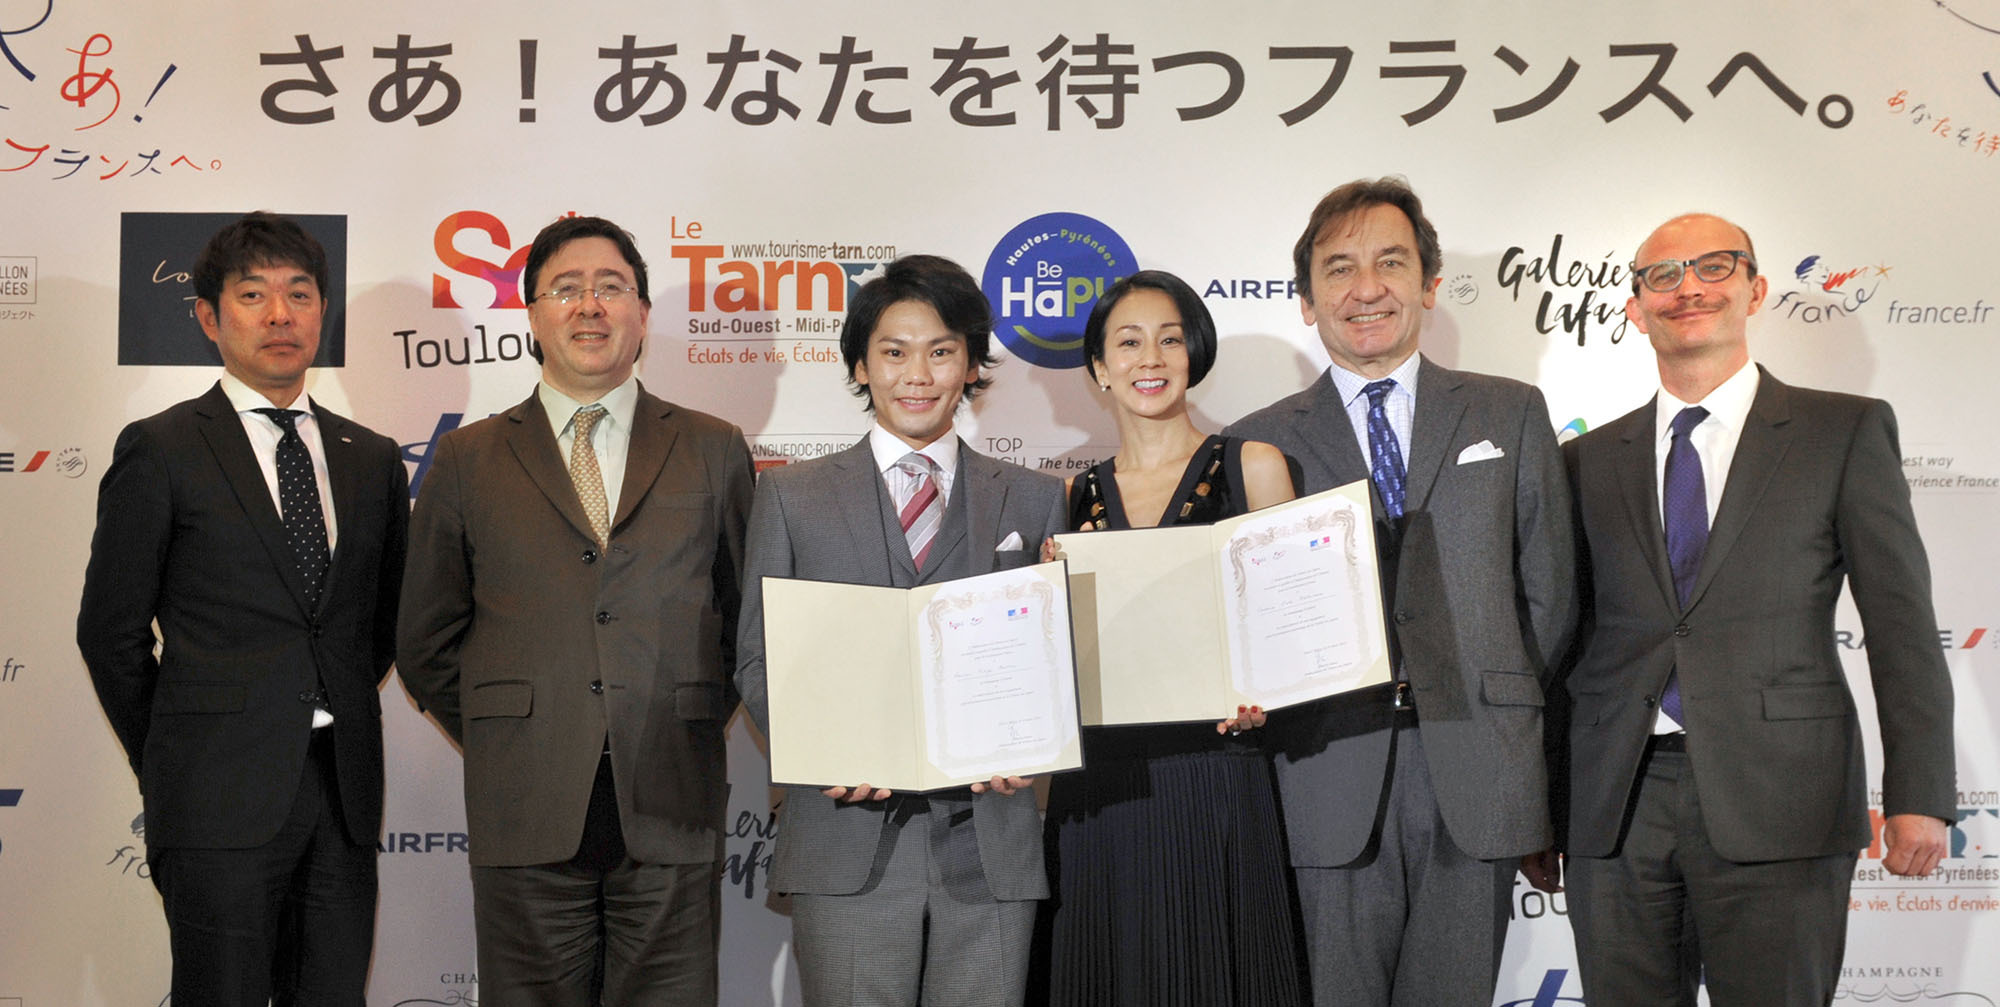 "Bicycle racer Yukiya Arashiro (third from left) and freelance announcer Eriko Nakamura (third from right), after being named France 2016 sightseeing goodwill ambassadors, pose with ""France Sightseeing Campaign 2016"" partners, from left, Shigeru Fukui, H.I.S. Co.; Frederic Mazenq, director in Japan of Atout France; French Ambassador Thierry Dana; and Stefan Vanovermeir, general manager for Japan, Air France and KLM at a press conference at the ambassador's residence in Tokyo on March 24. 